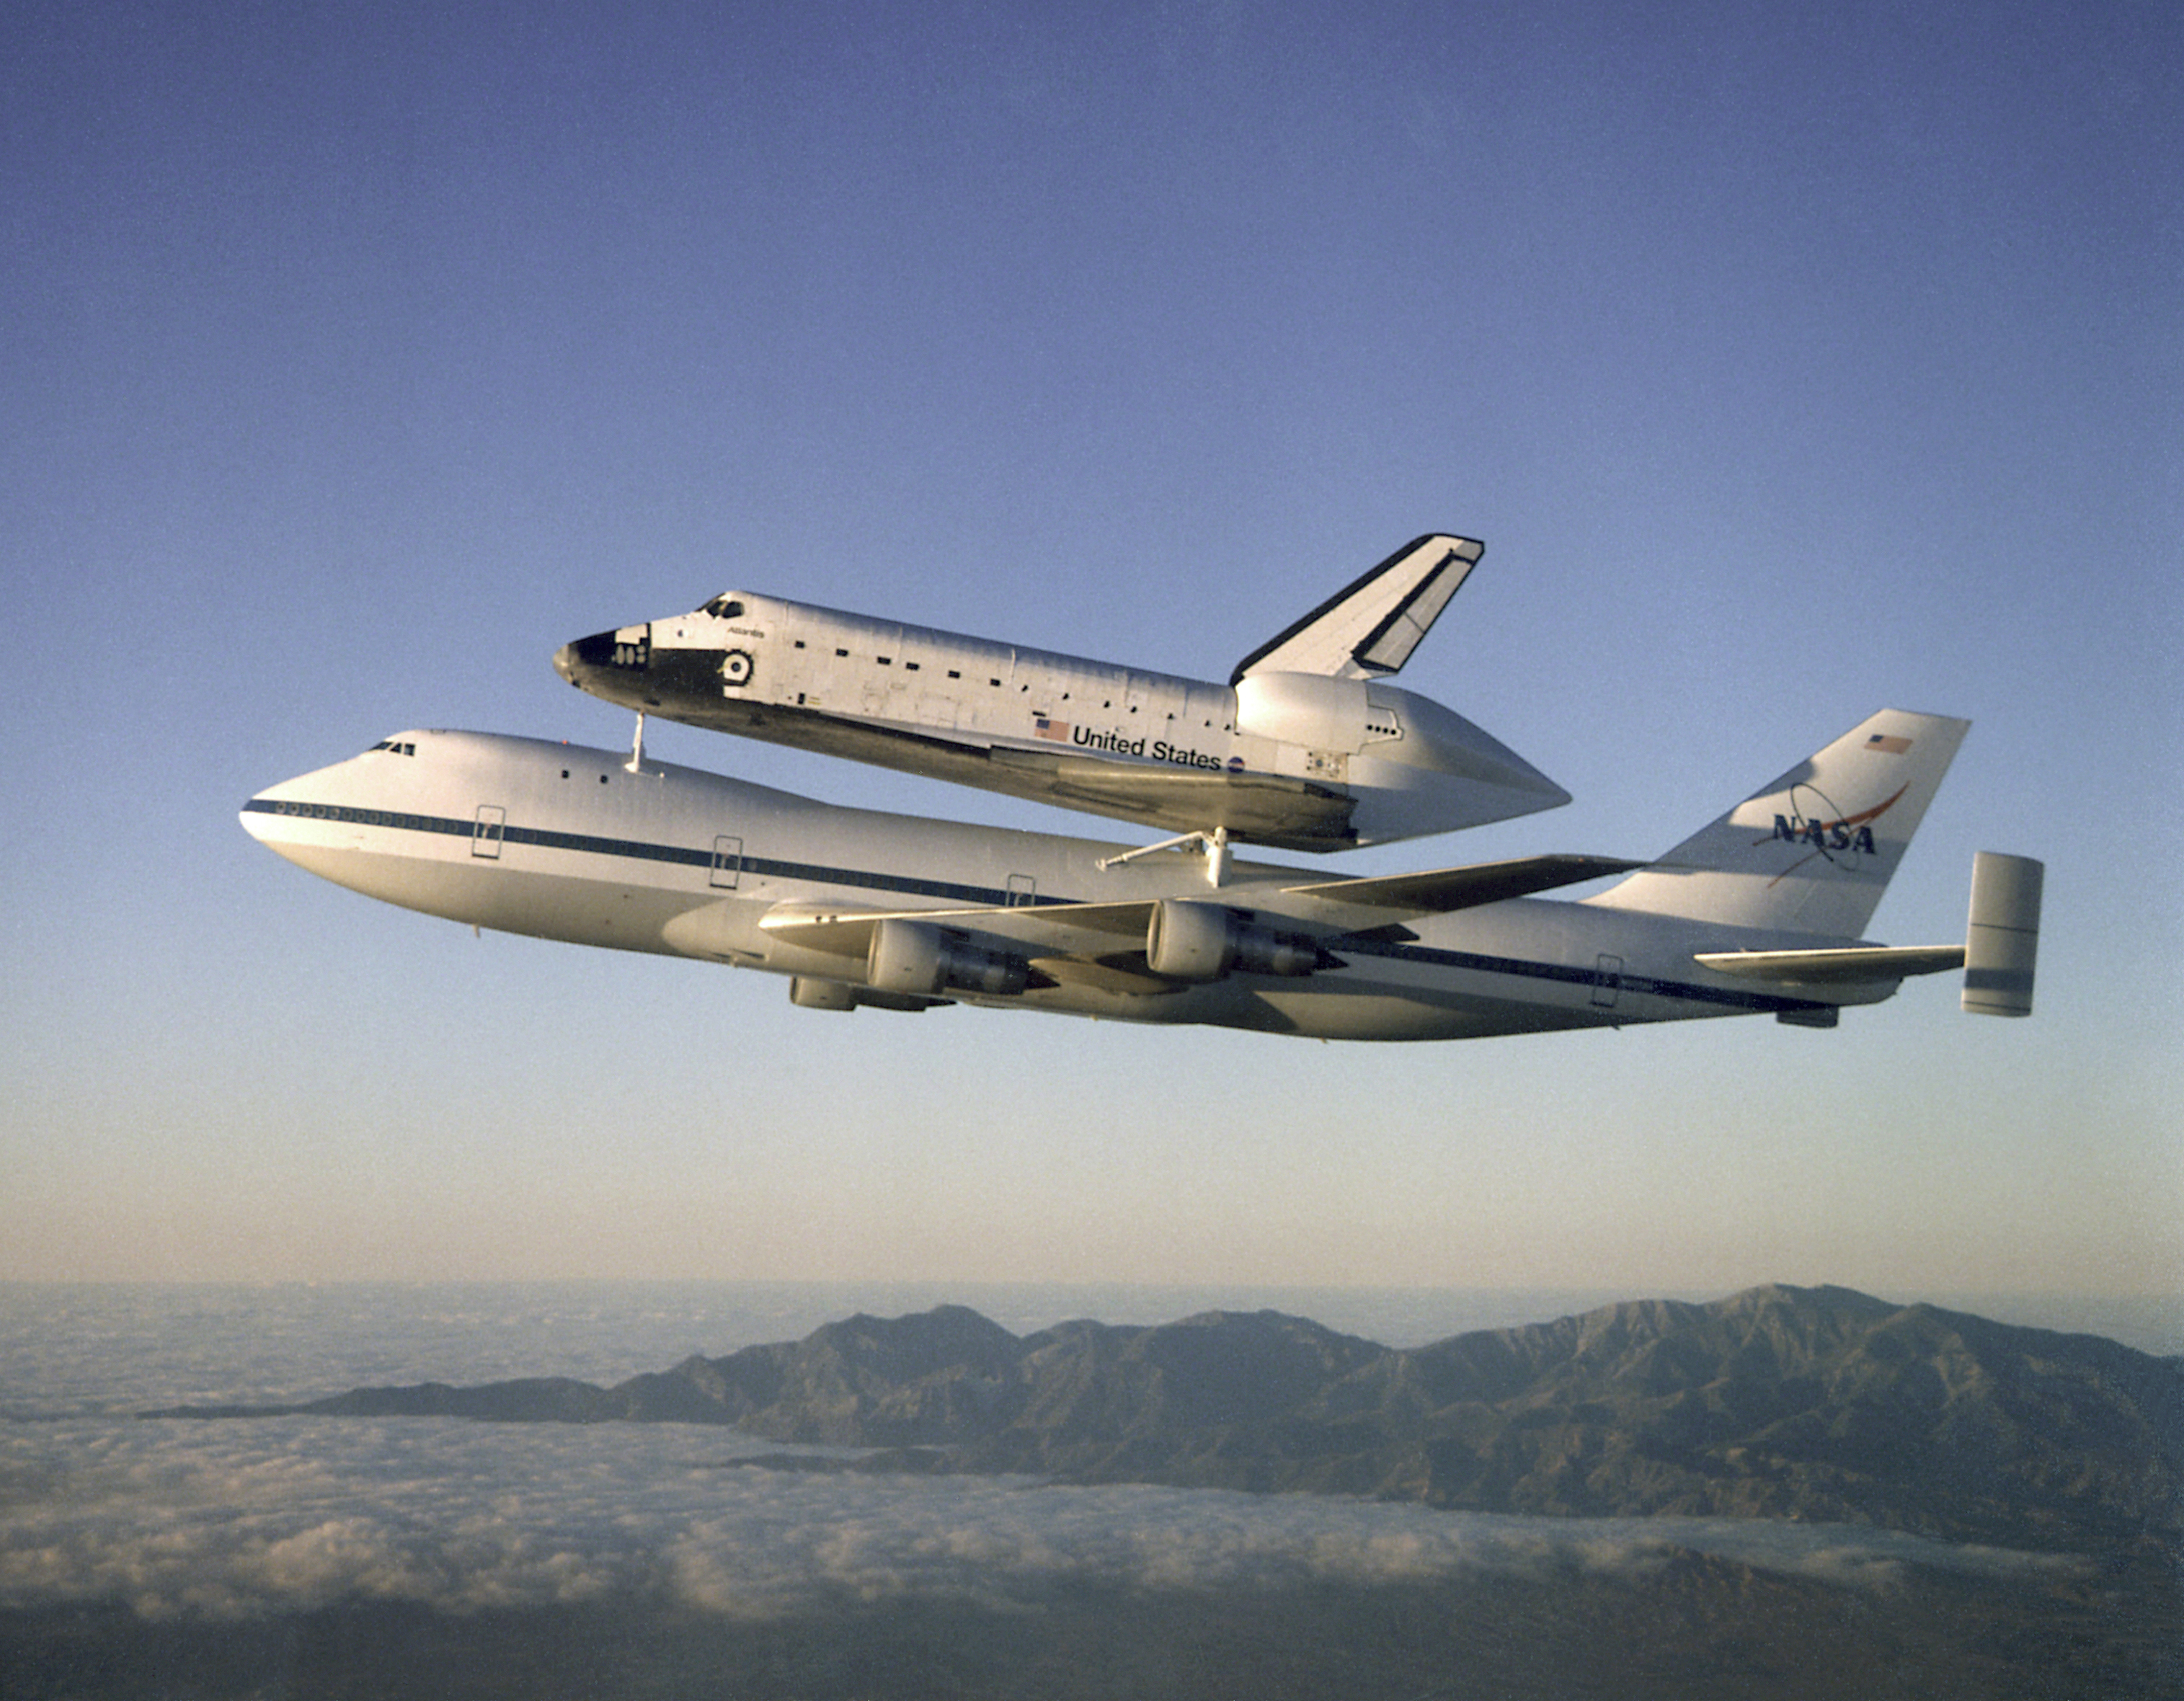 kelly afb space shuttle carrier aircraft - photo #34